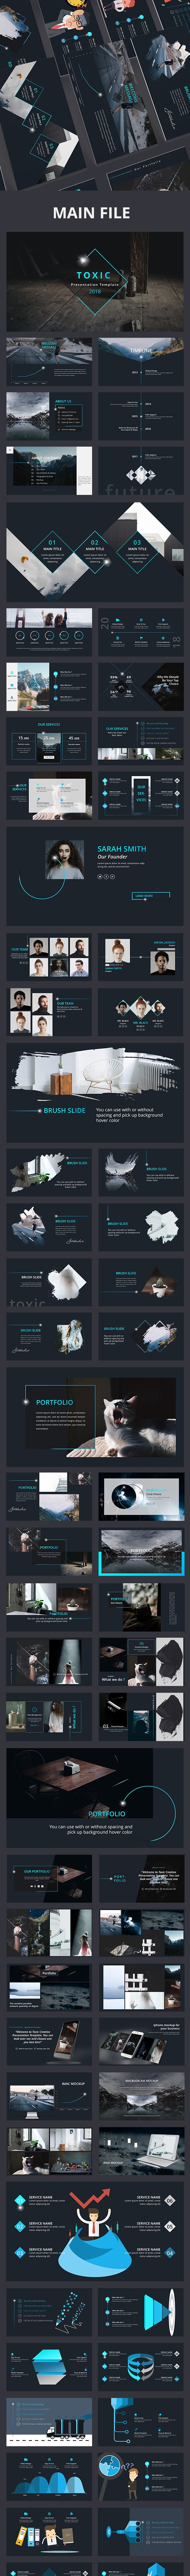 Toxic Creative Powerpoint Template - Creative PowerPoint Templates